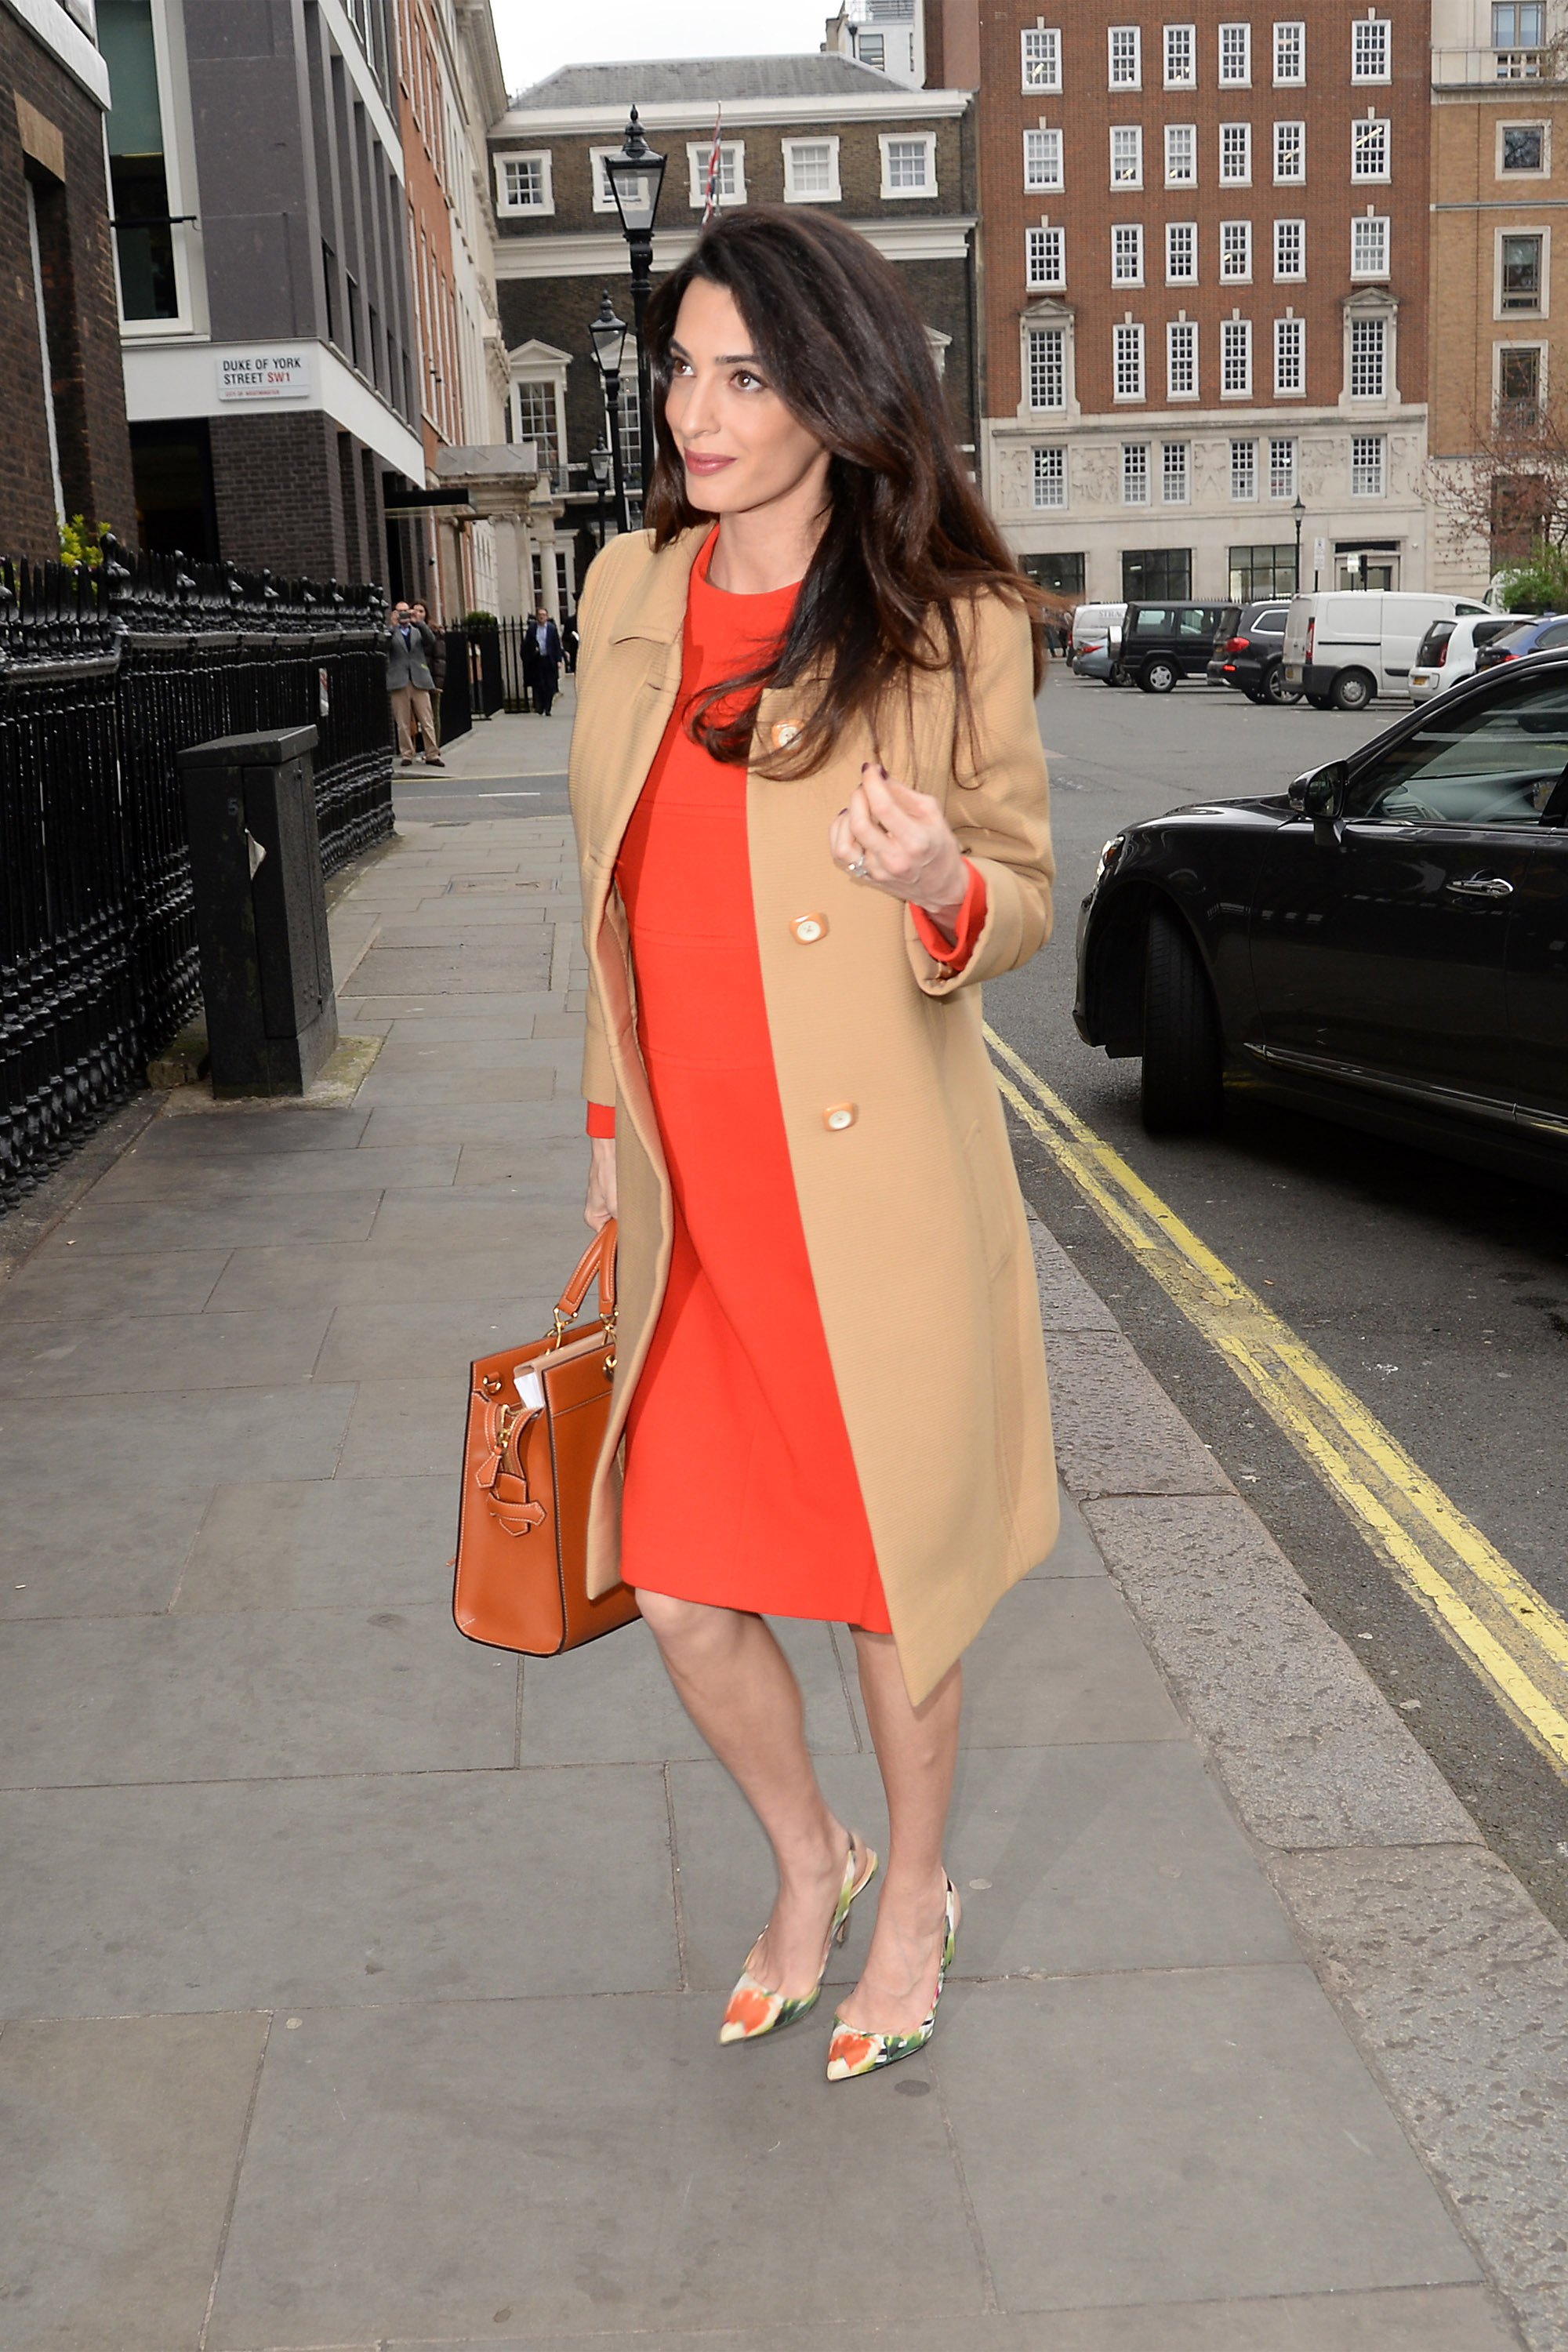 Amal Clooney's Best Looks - Pictures of Amal Clooney's Top ...